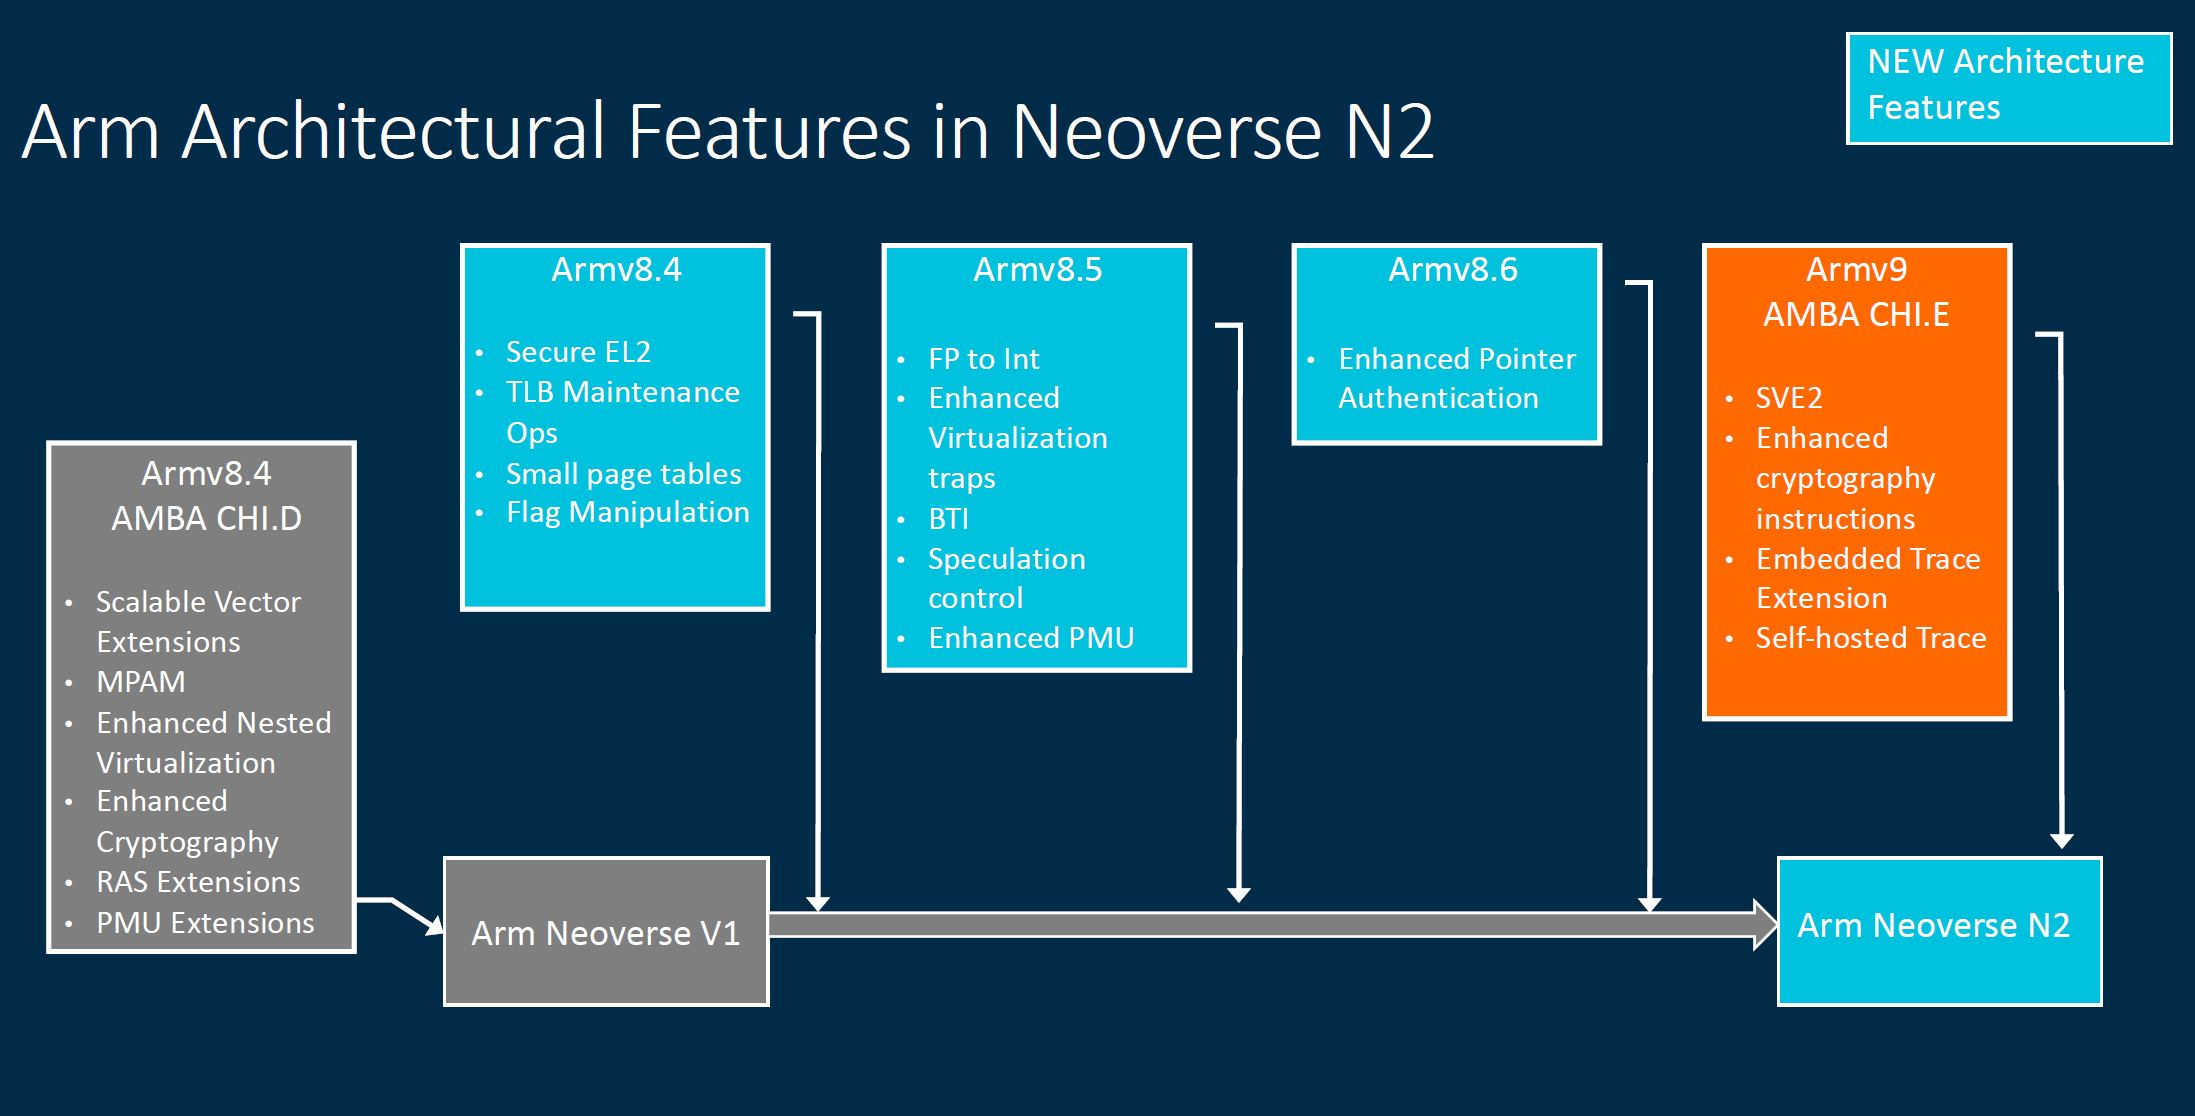 Arm Tech Day 2021 Neoverse N2 Architectural Features